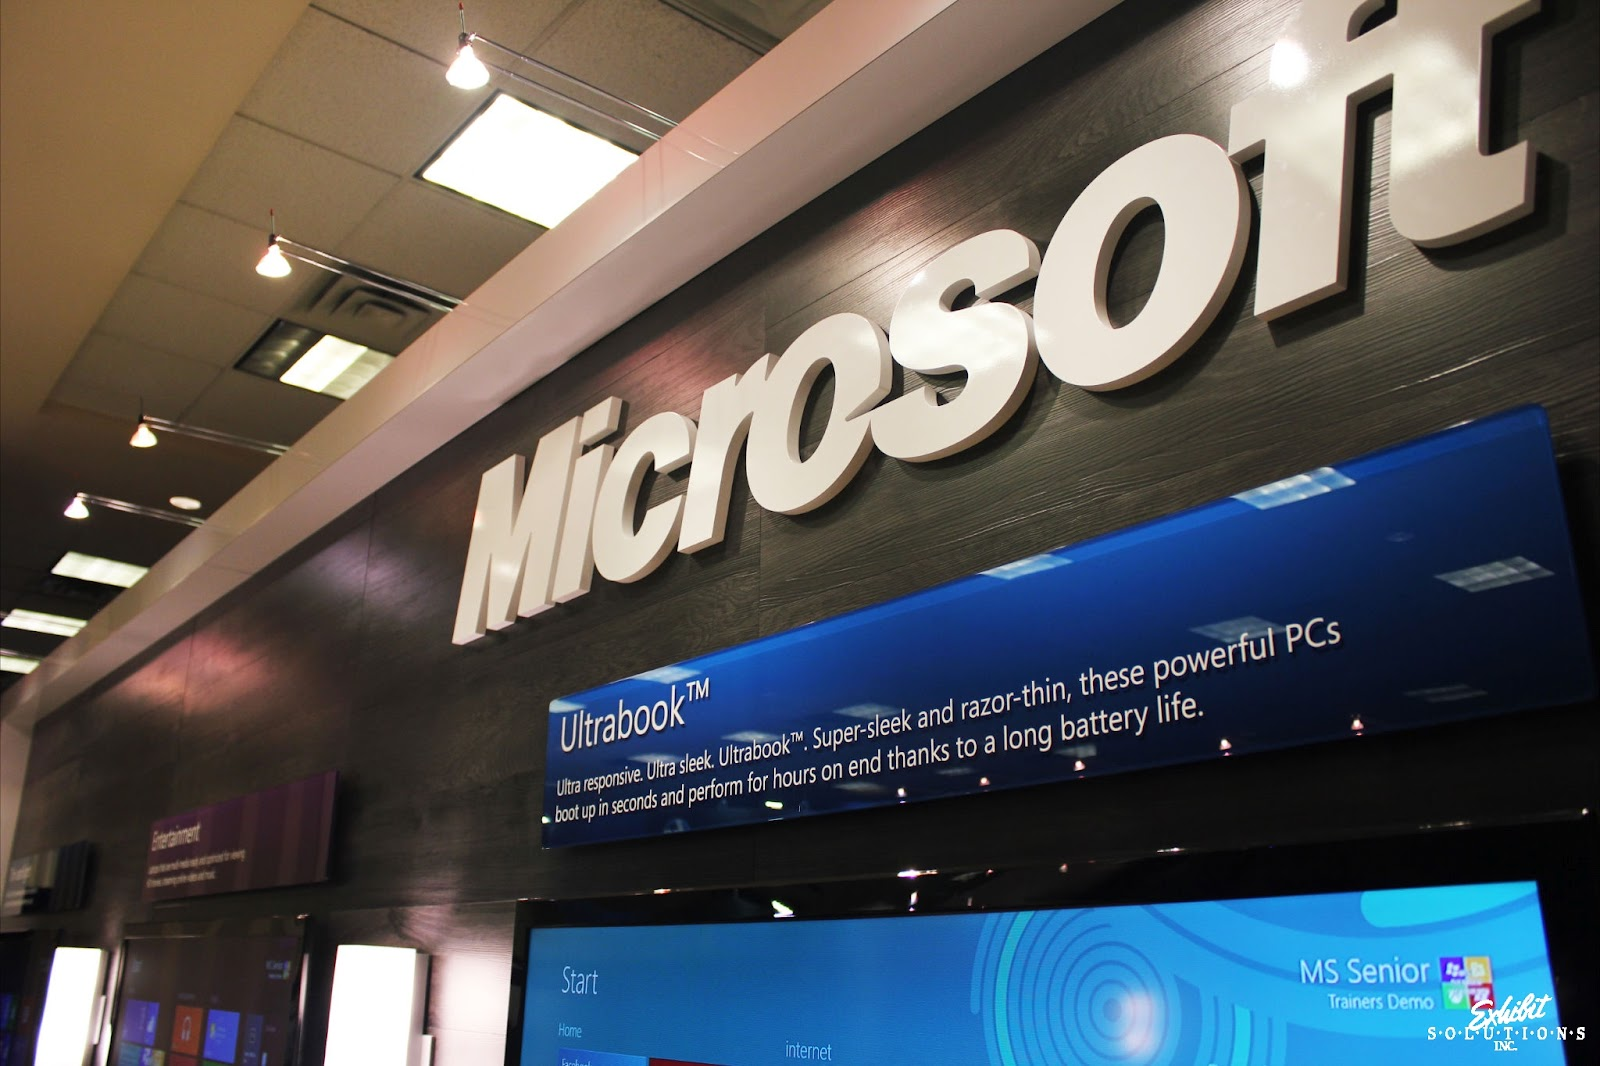 Exhibit Solutions - Microsoft - Future Shop Home Office Show 2012 - 09.JPG